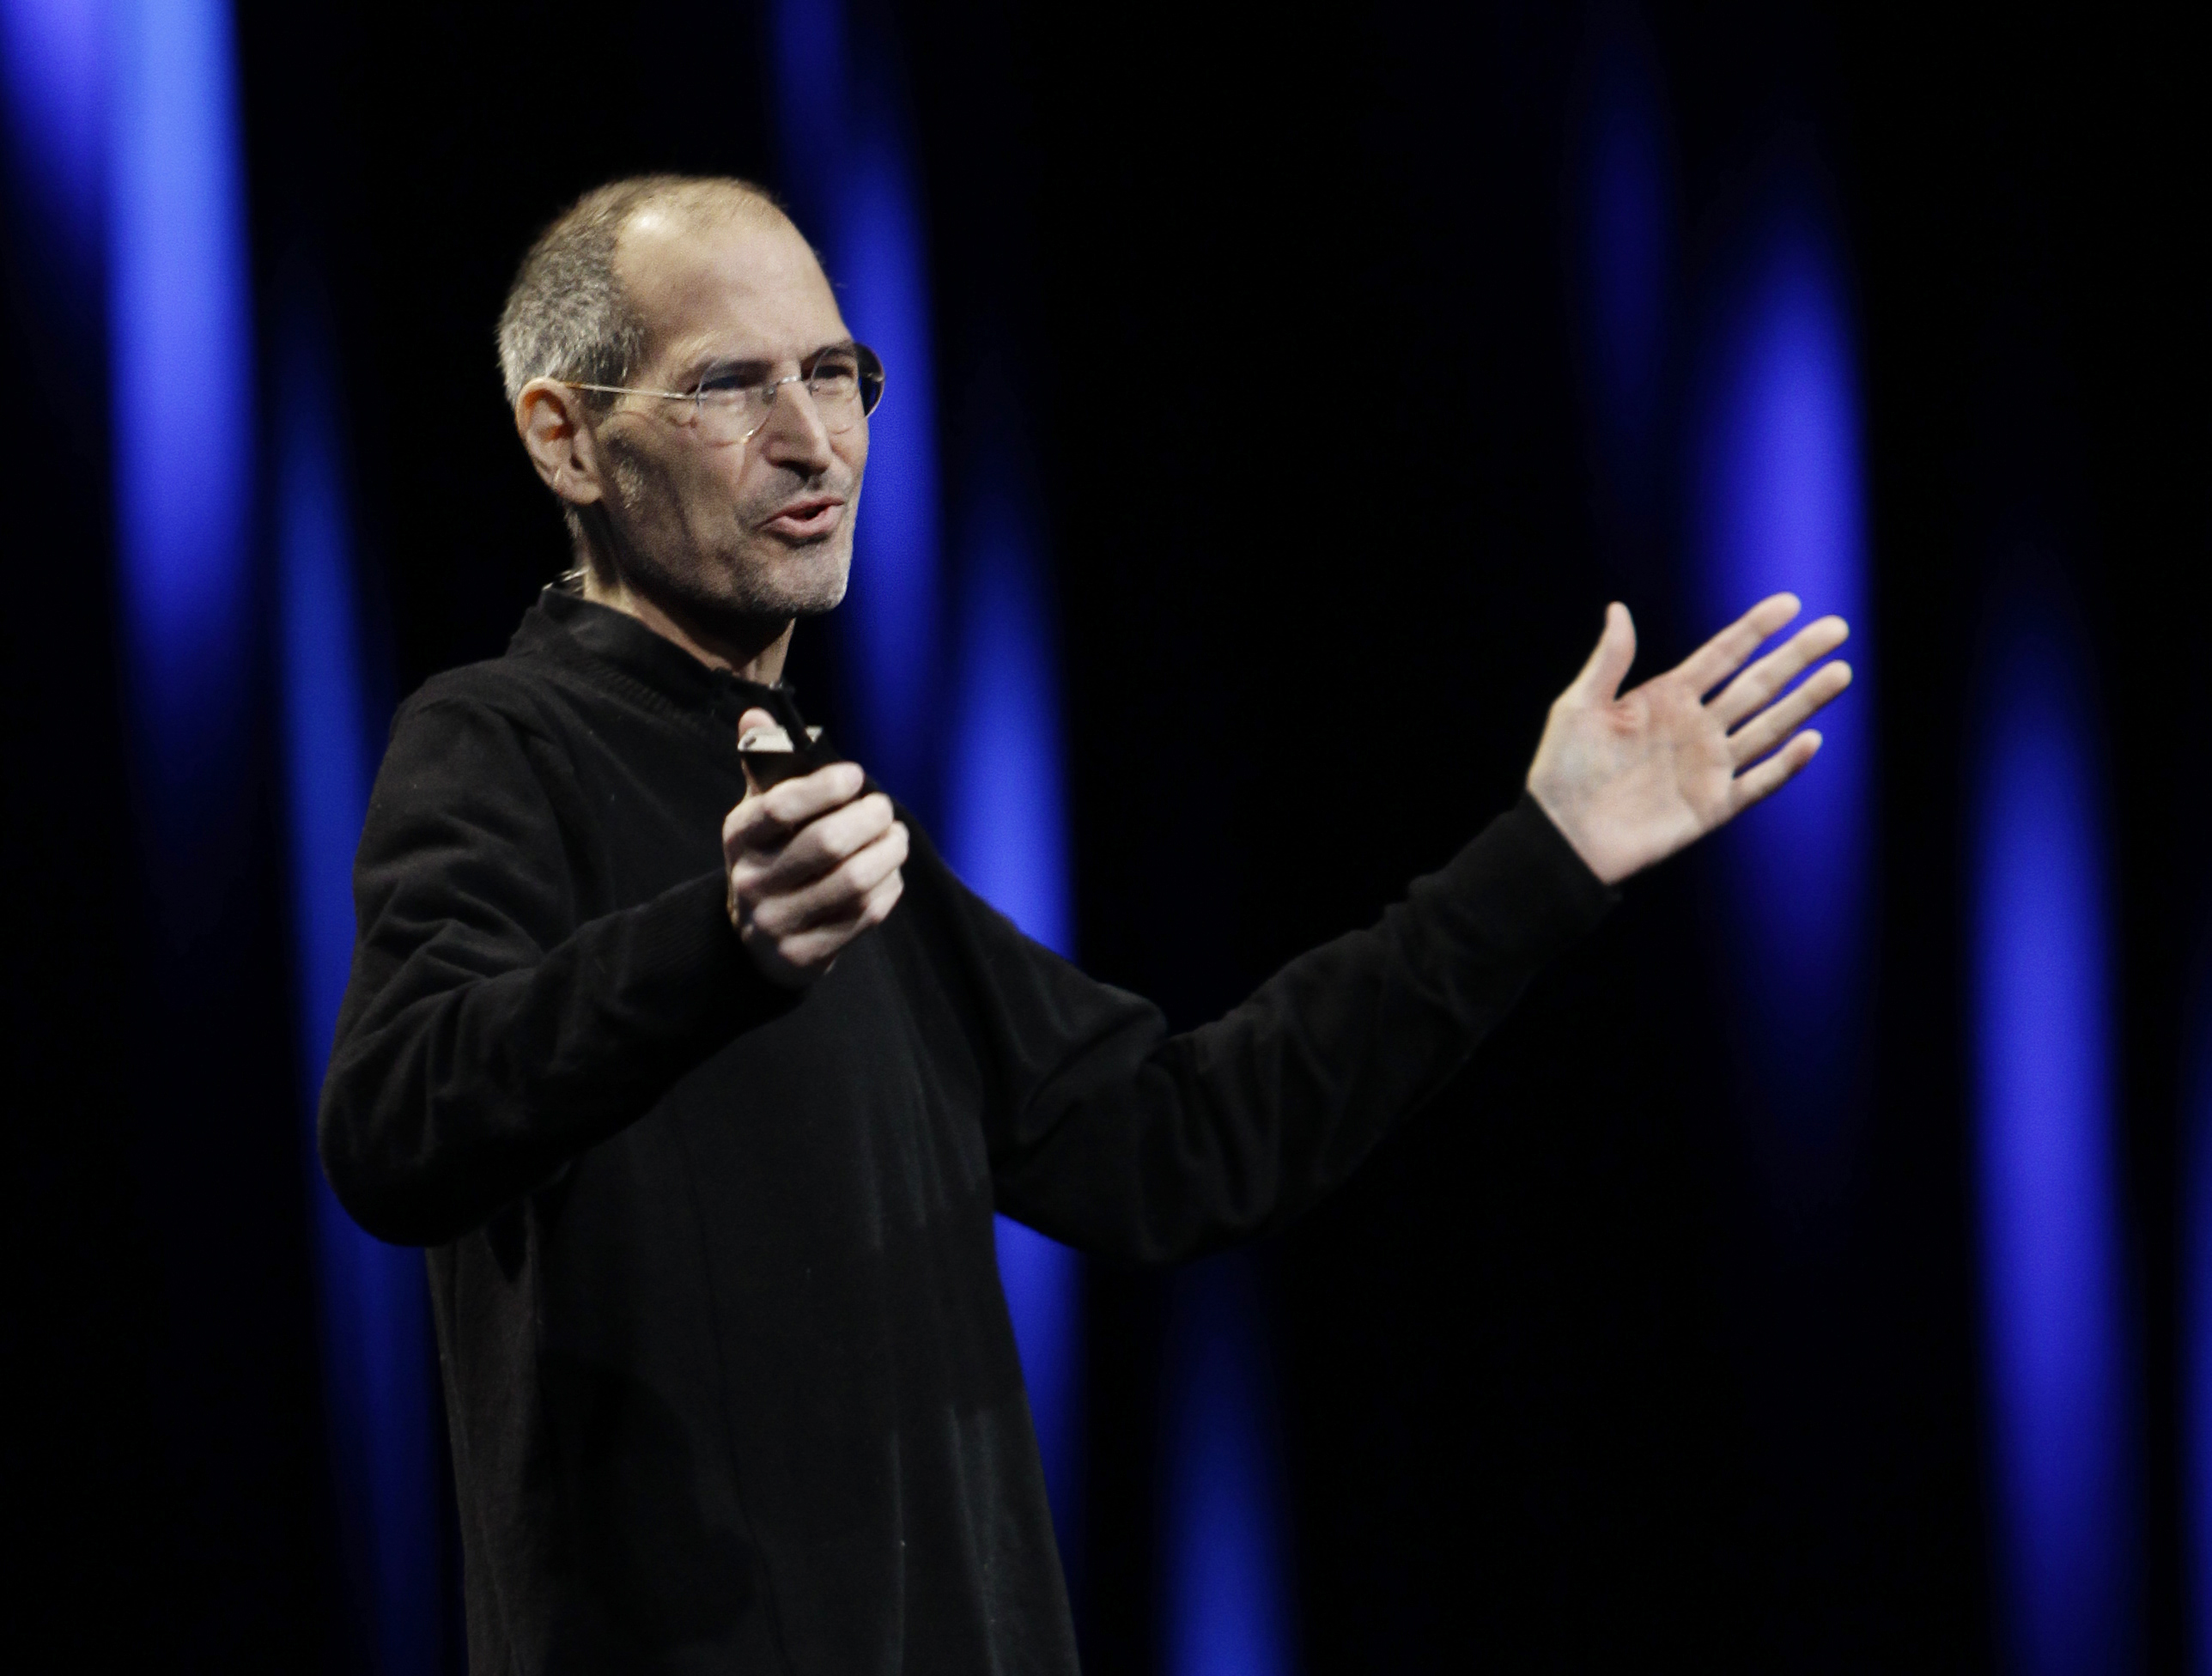 lisa brennan jobs bio news photos washington times apple ceo steve jobs gestures to his audience during a keynote address to the apple worldwide